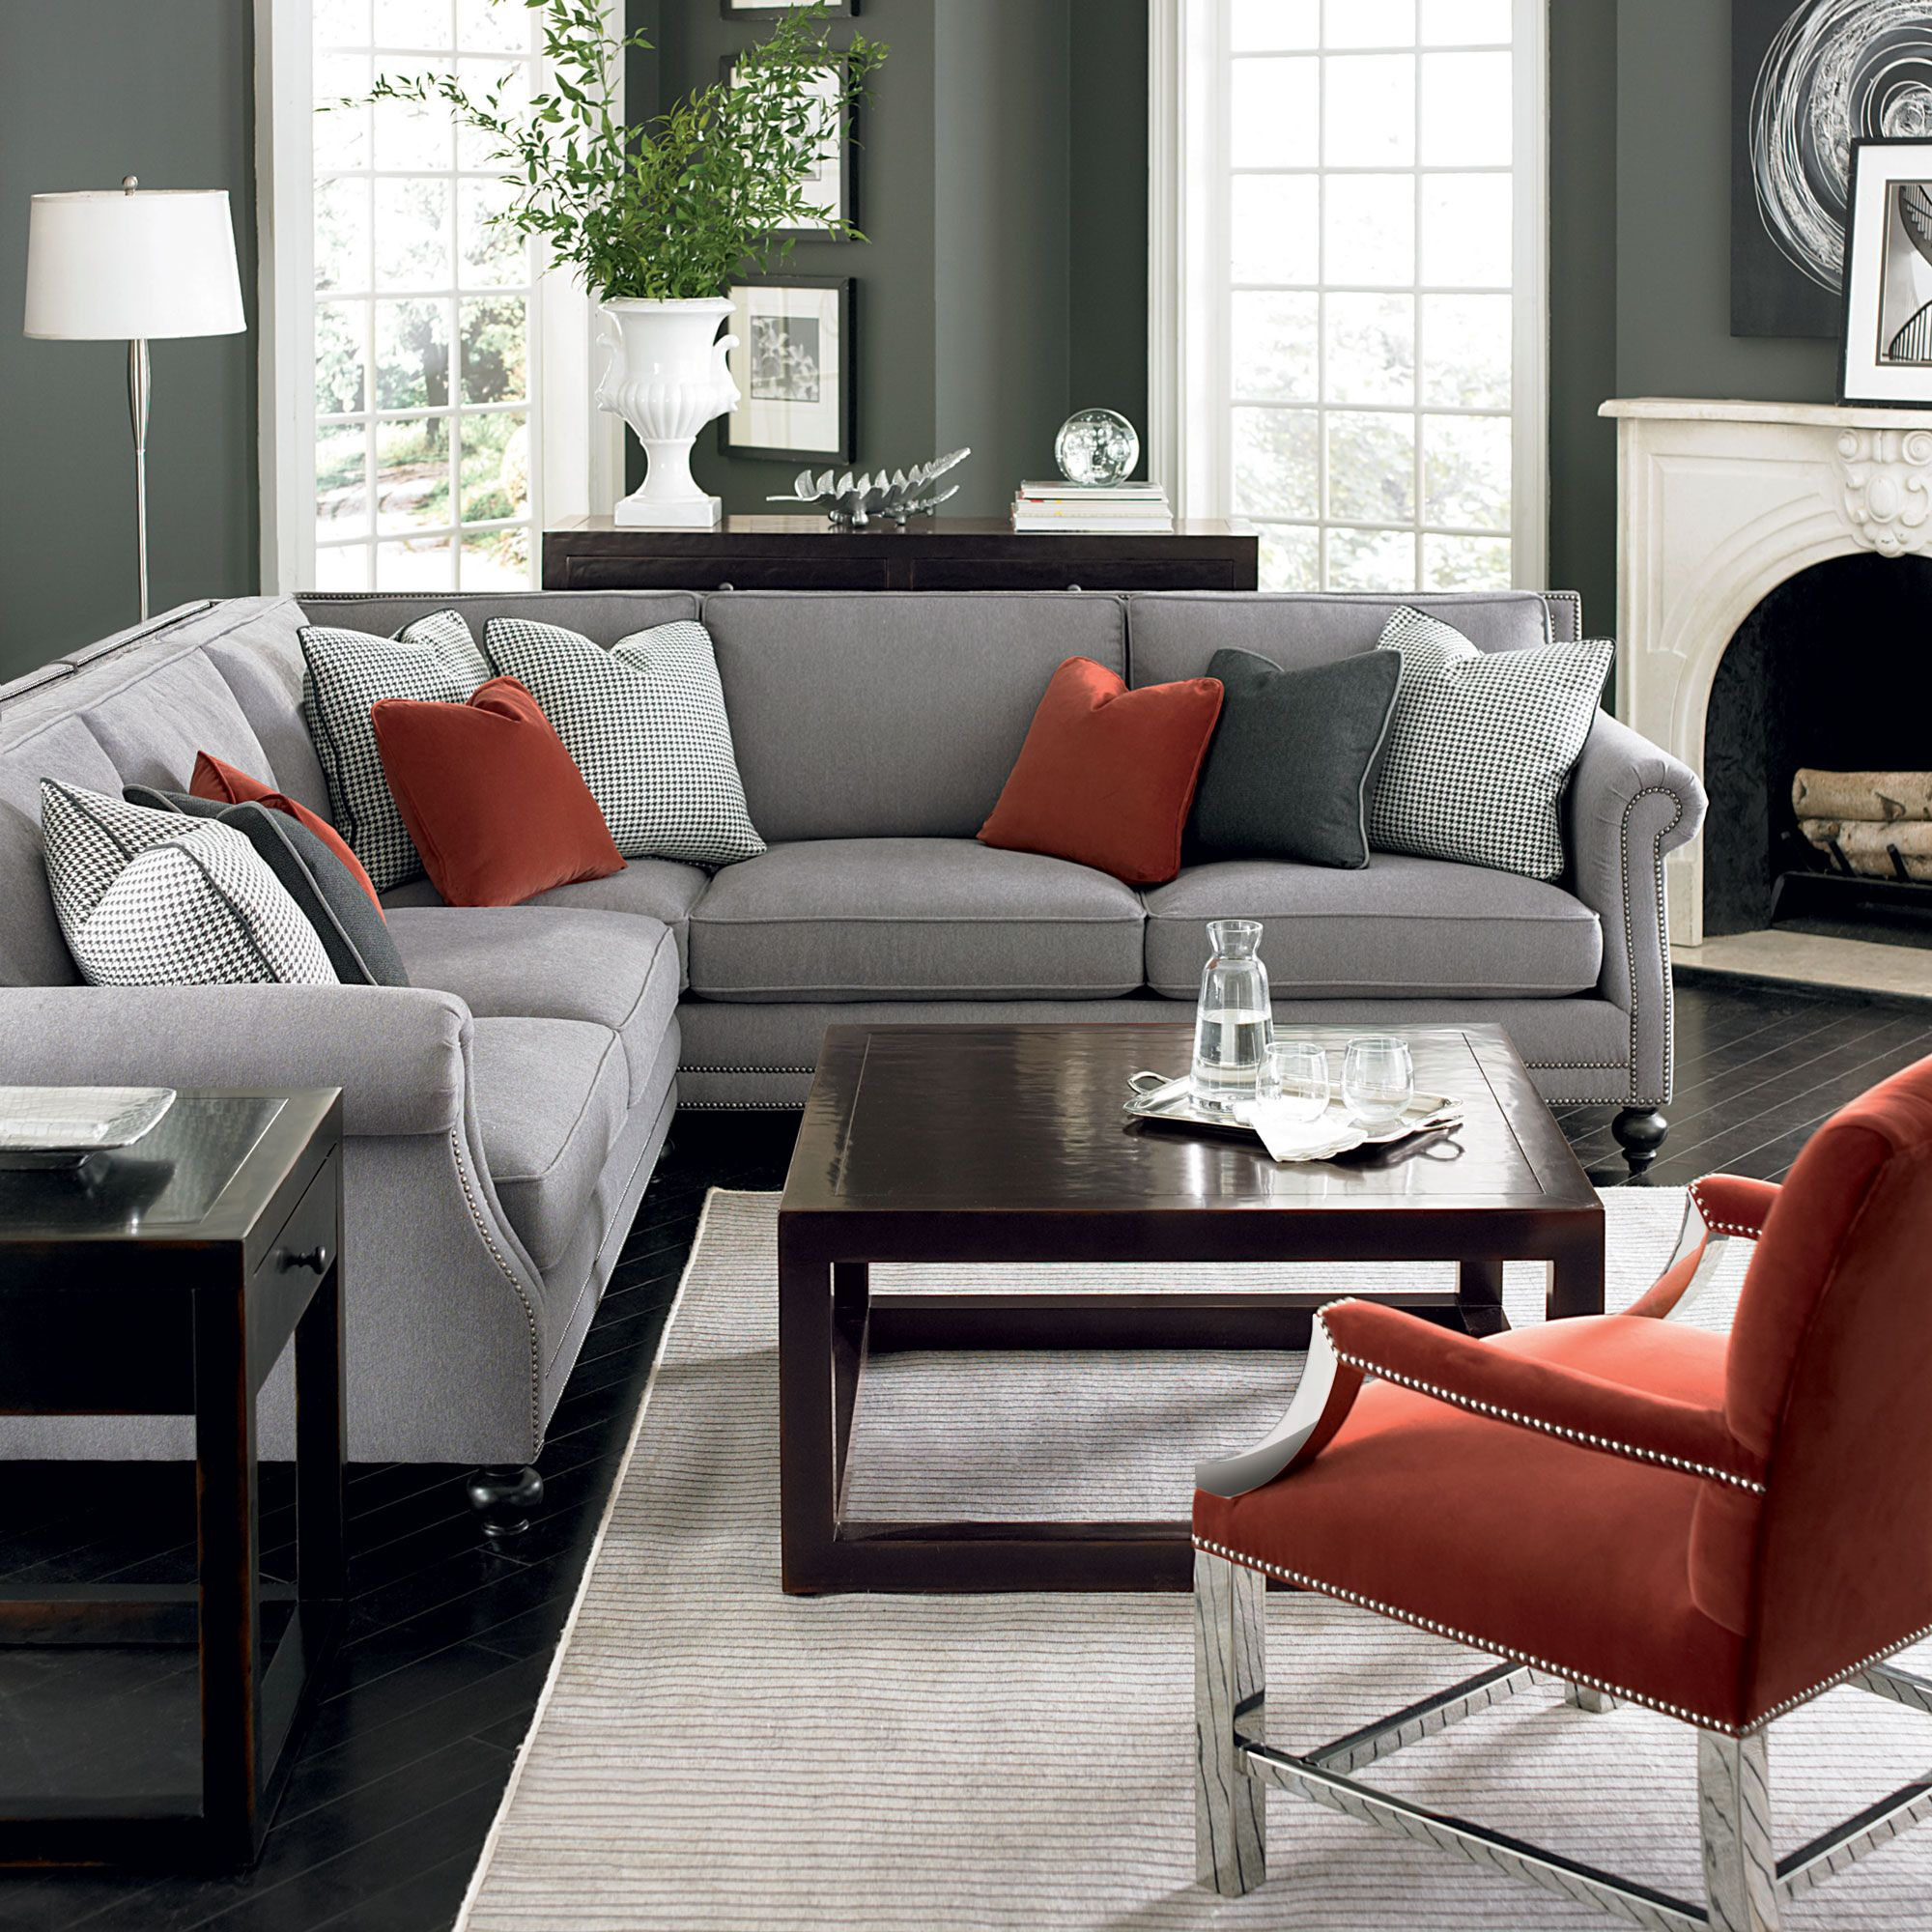 Marvelous Bernhardt Living Room In Grey Red And Silver Brae Interior Design Ideas Oxytryabchikinfo